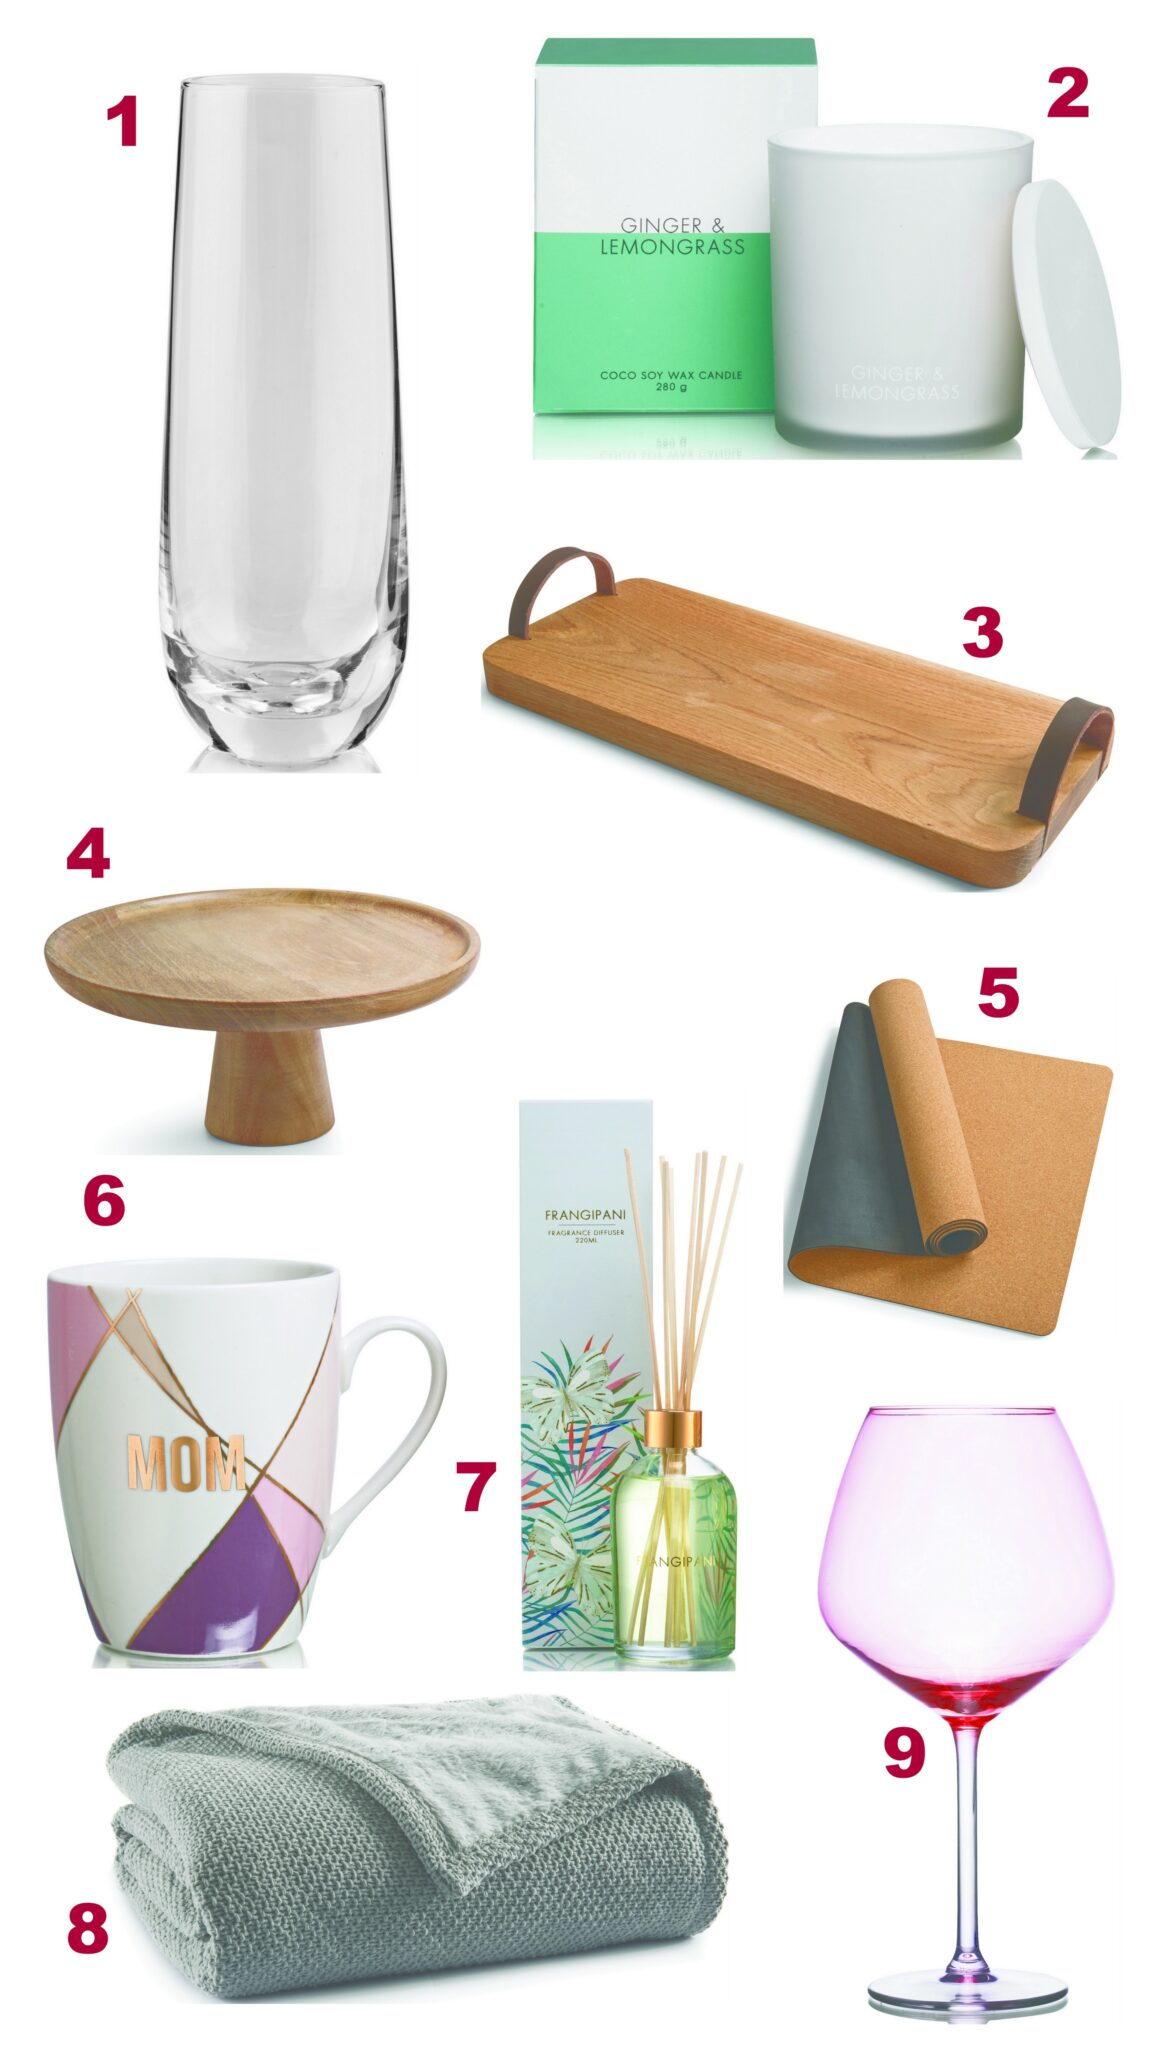 MOTHER'S DAY GIFT GUIDE - HOME